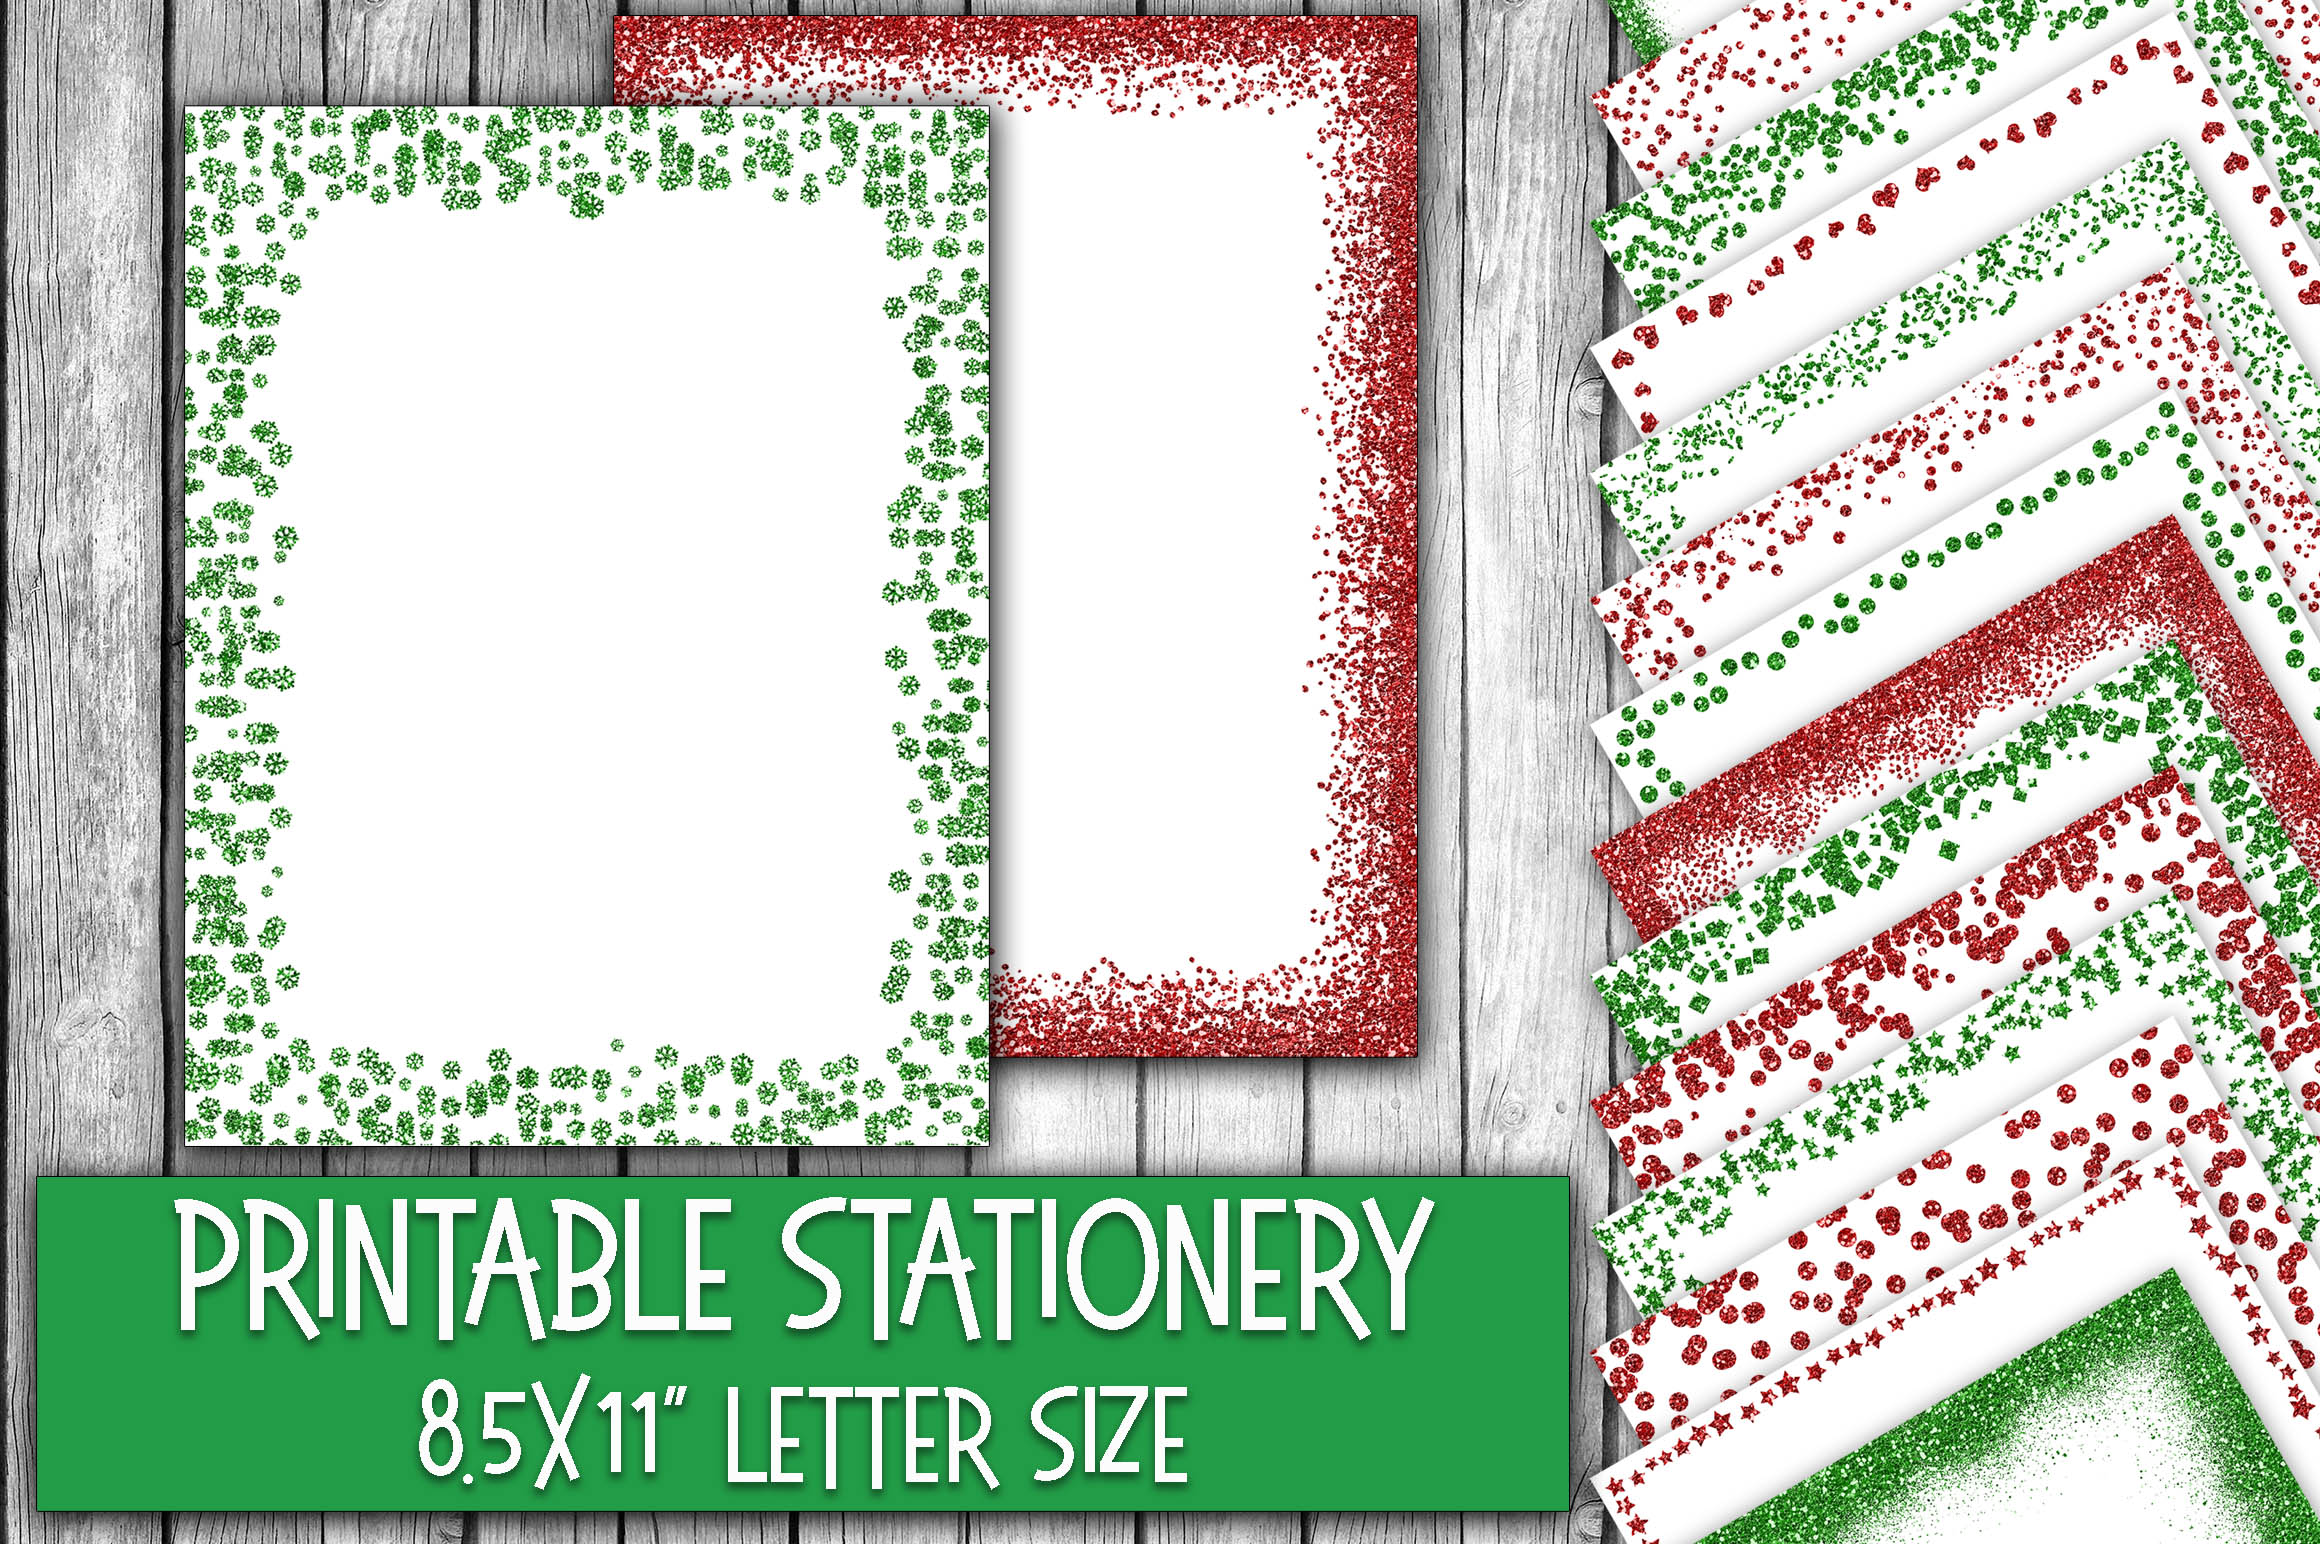 Christmas Stationery - Glitter Borders - Digital Paper Graphic By oldmarketdesigns Image 1